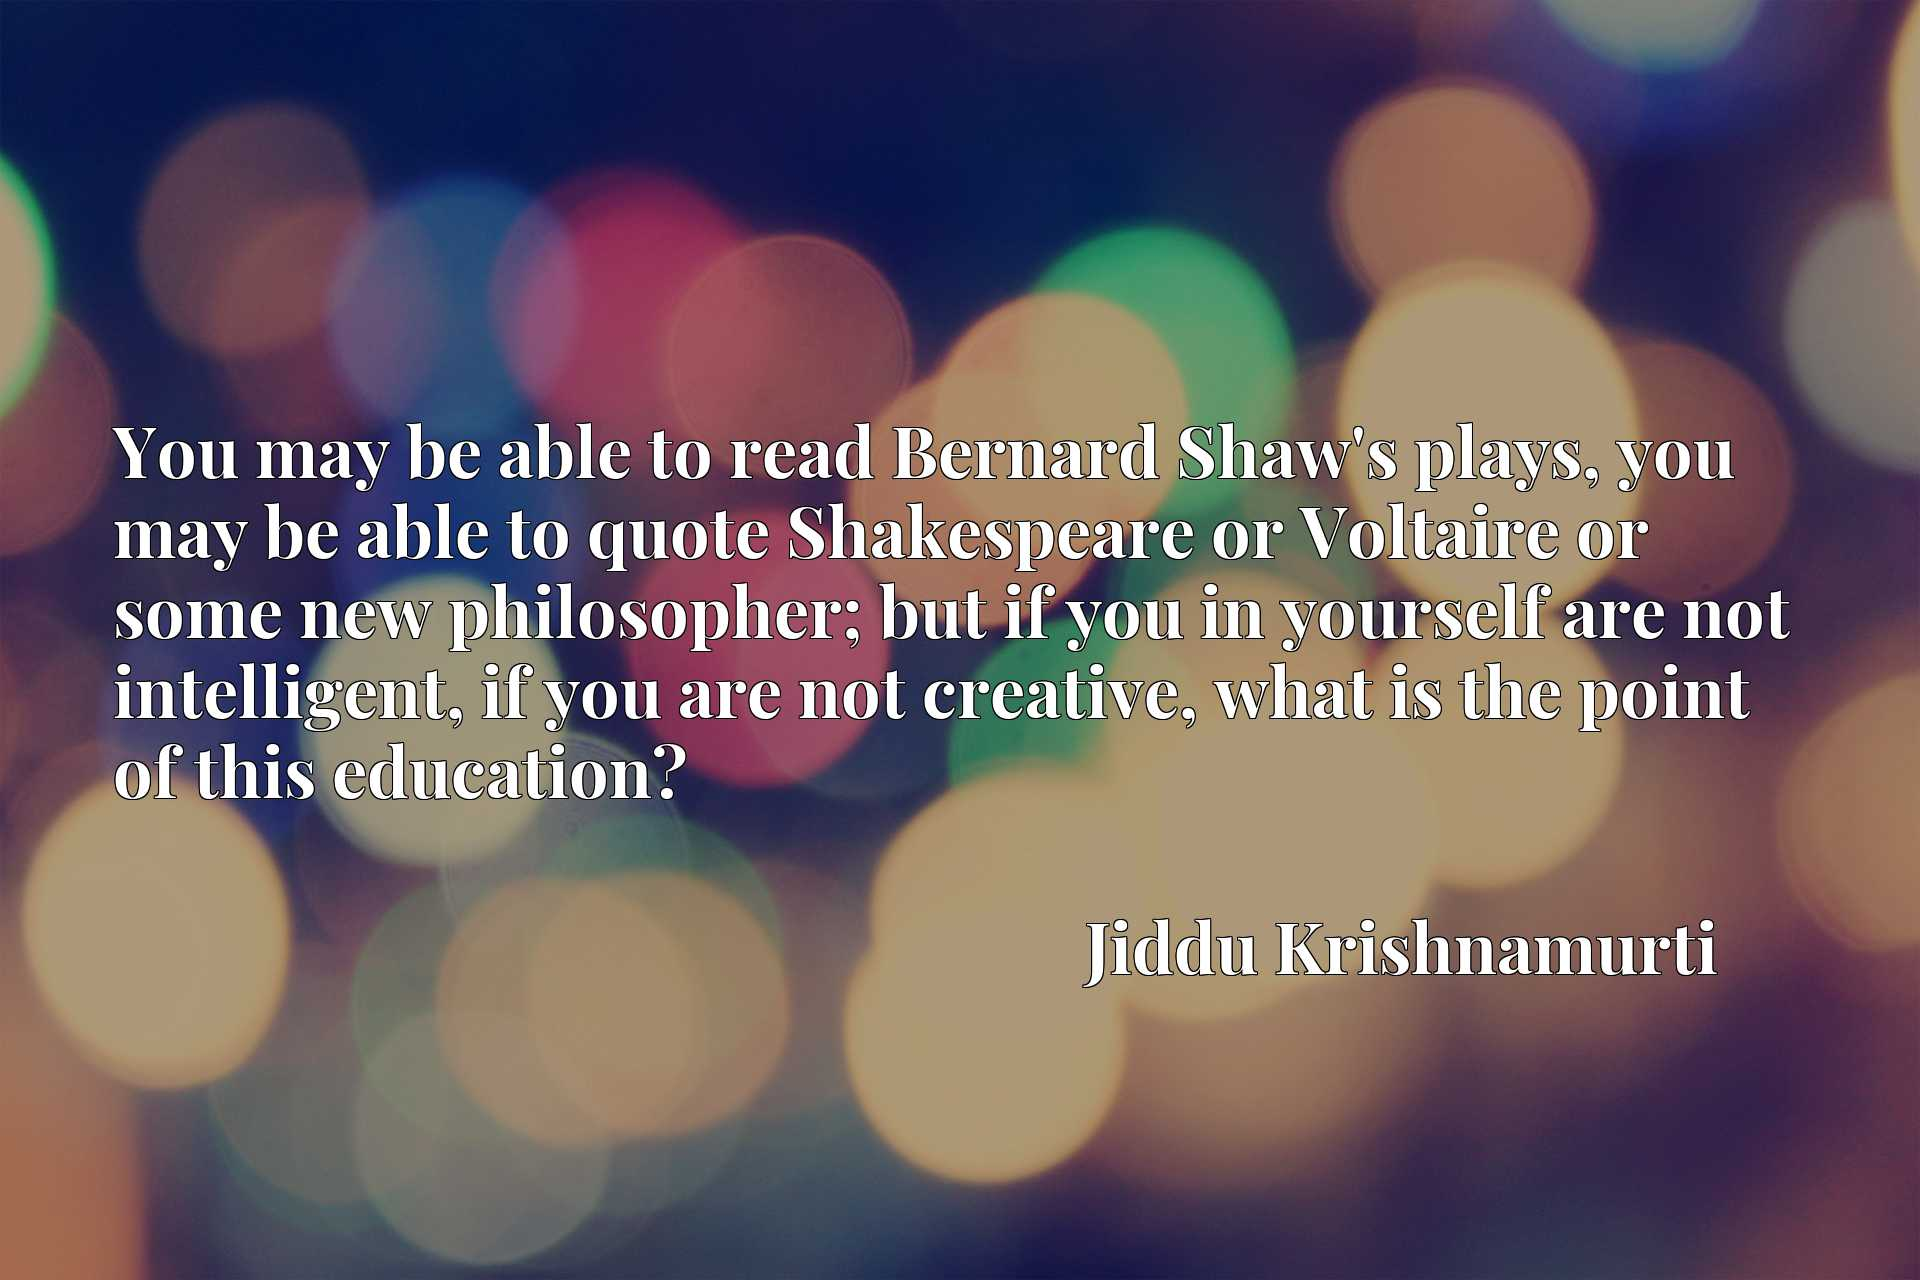 You may be able to read Bernard Shaw's plays, you may be able to quote Shakespeare or Voltaire or some new philosopher; but if you in yourself are not intelligent, if you are not creative, what is the point of this education?